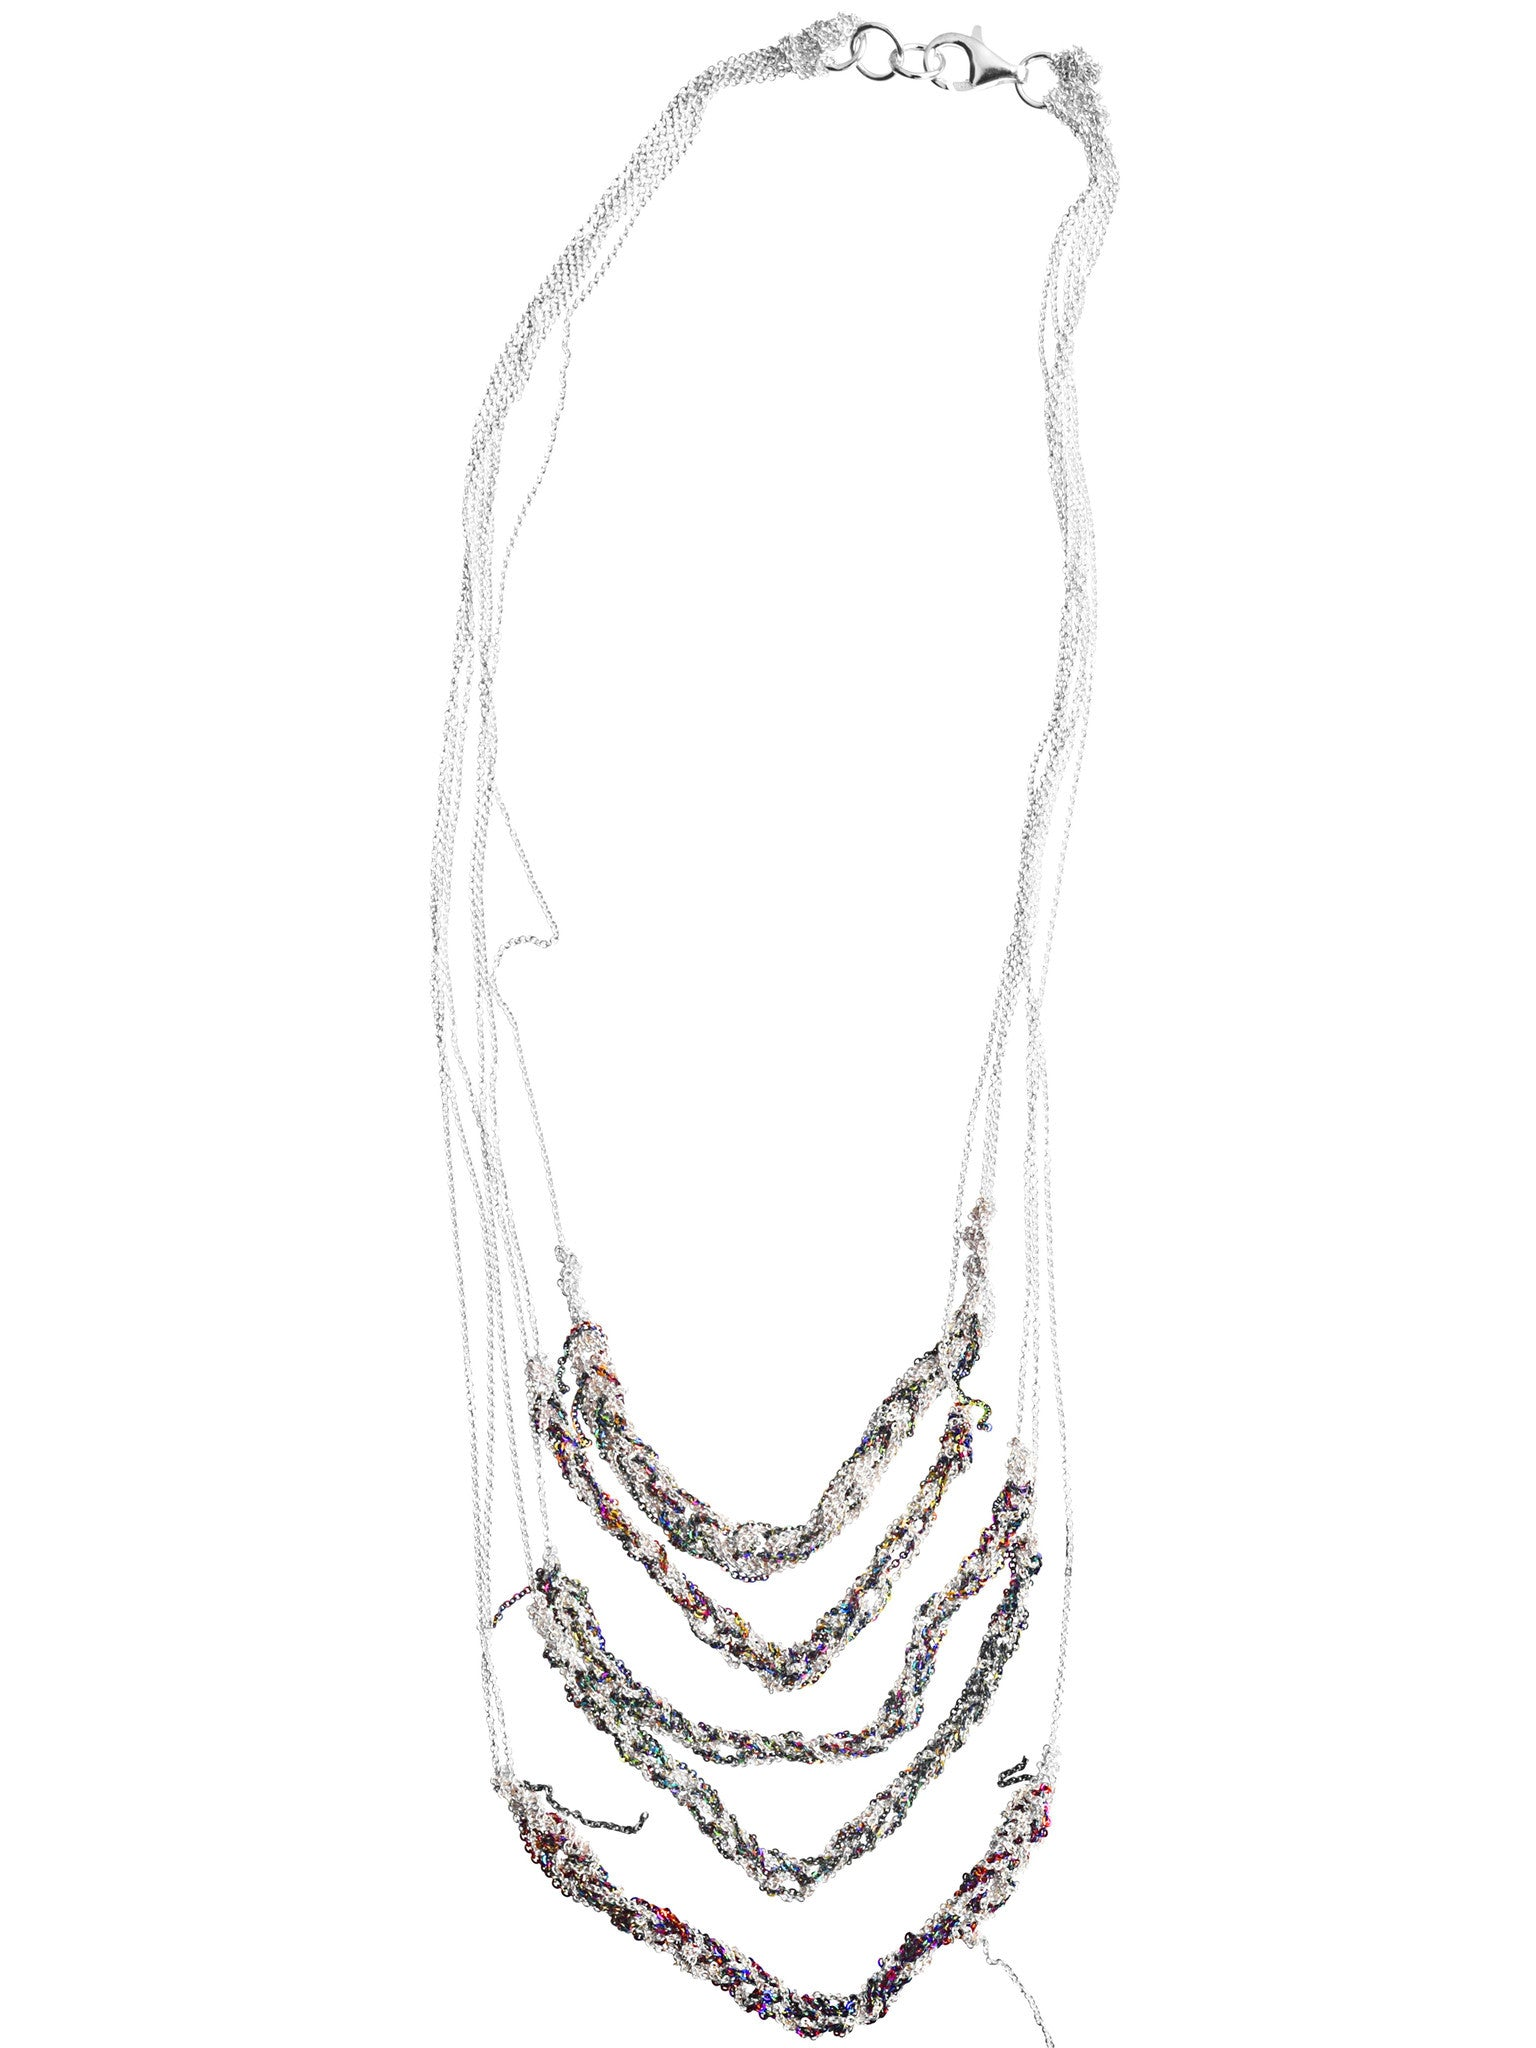 5 Tiered Bare Chain - Silver + Spectrum